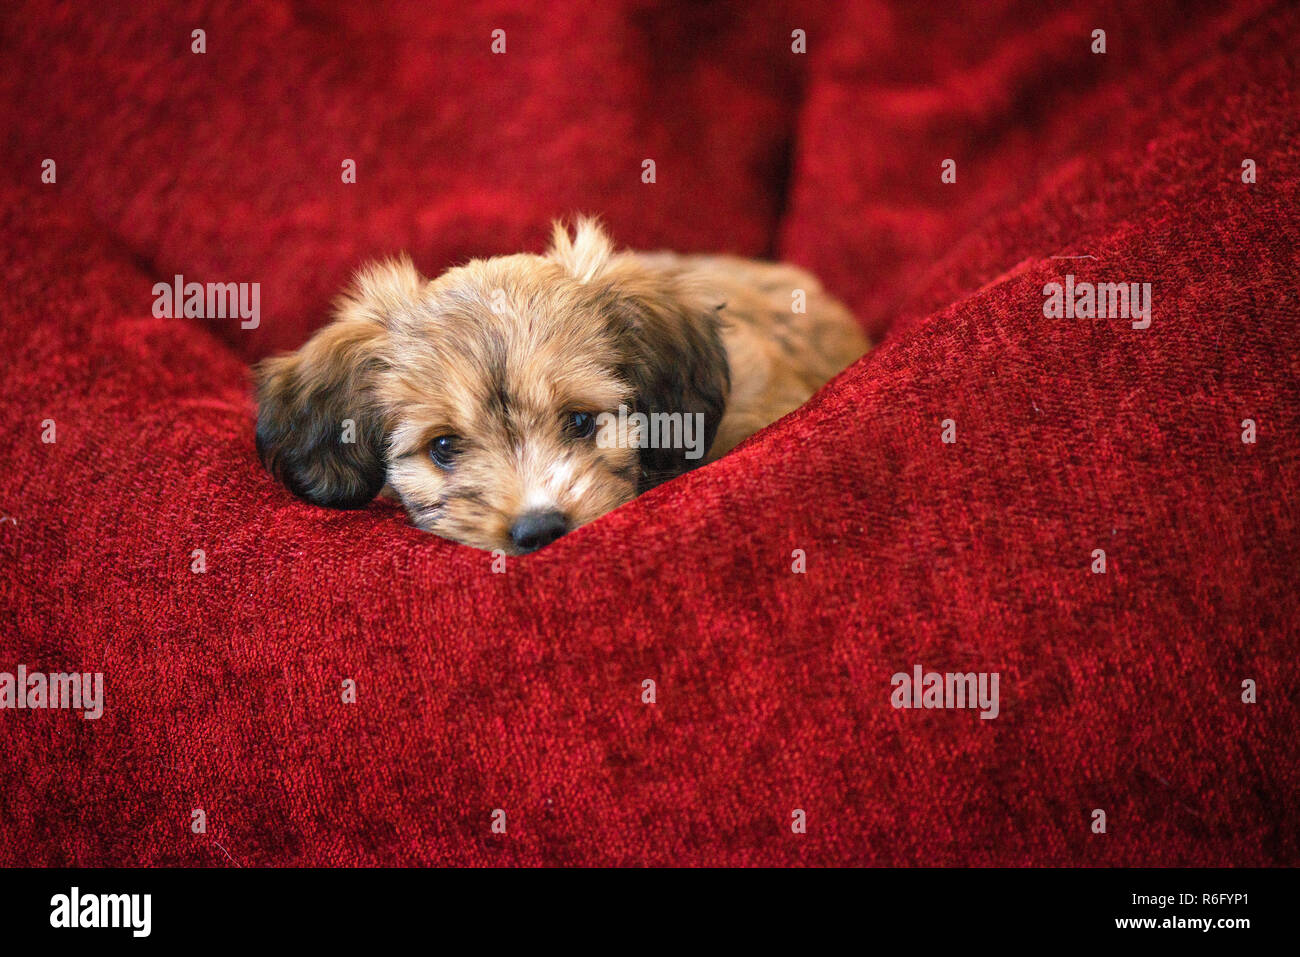 Wondrous Curious Dog Obediently Laying In Big Red Bean Bag Little Uwap Interior Chair Design Uwaporg